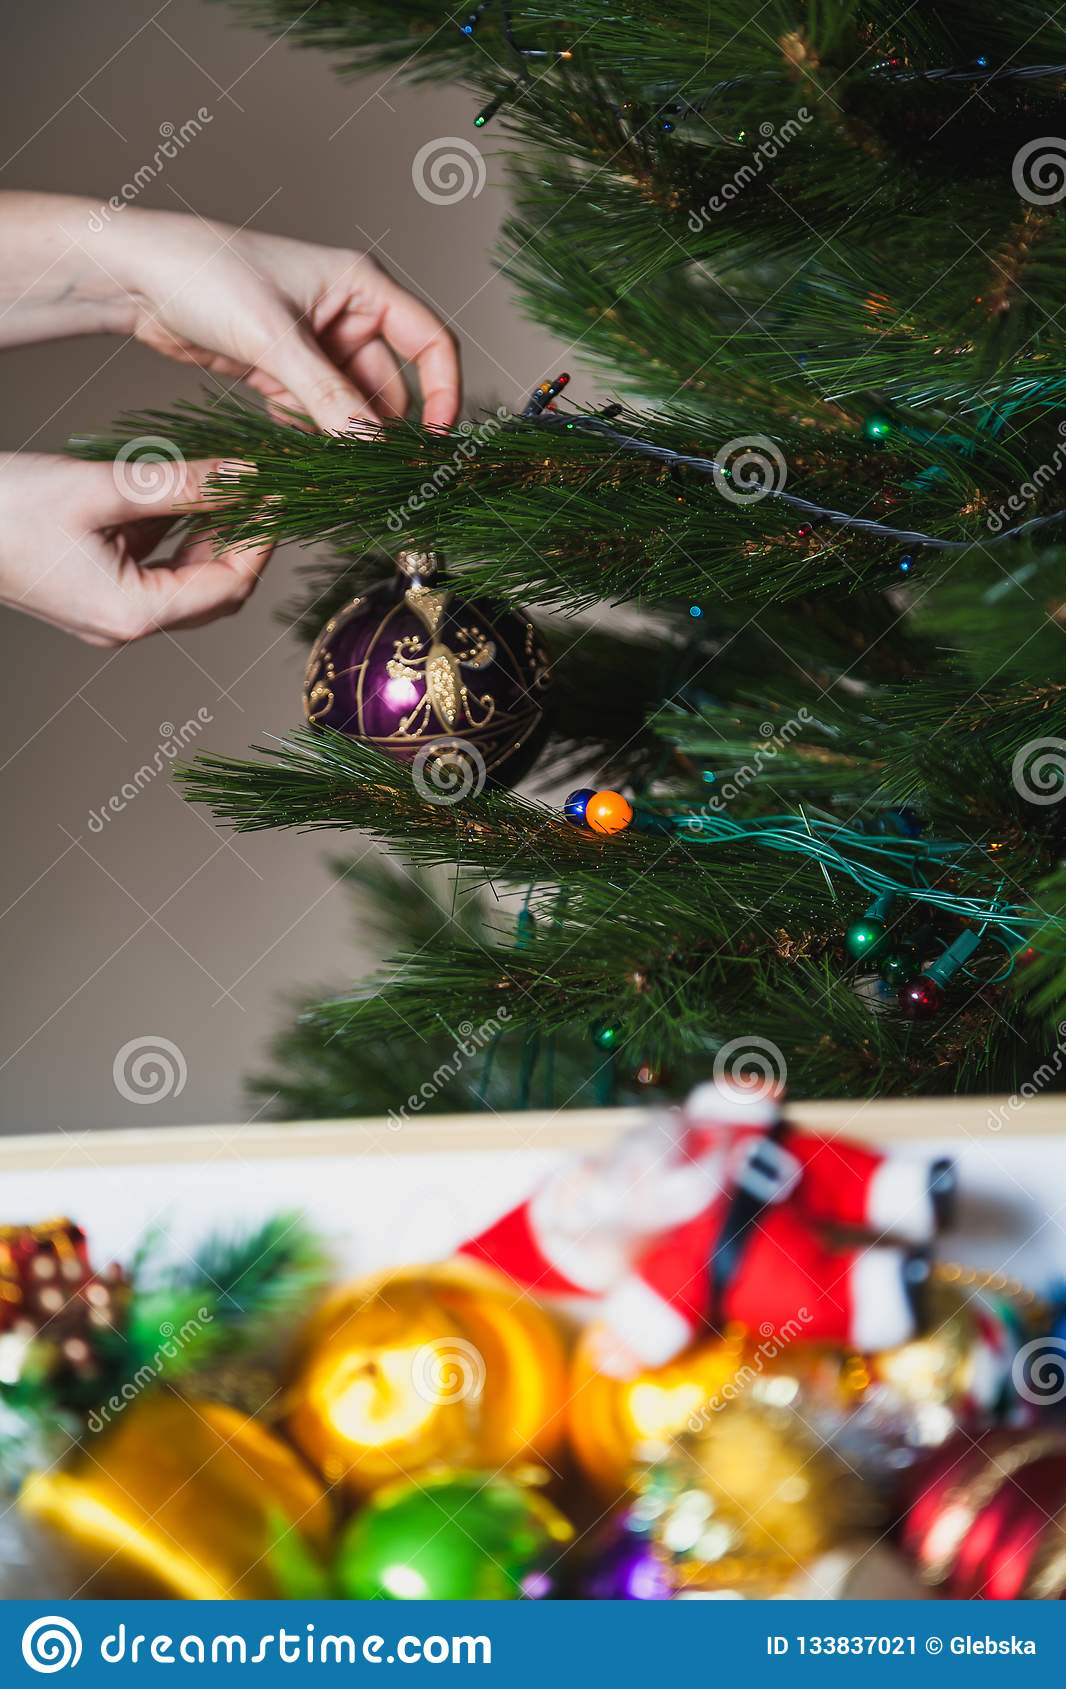 Fairytale Christmas Decorations.With Christmas Decorations White Box Stock Image Image Of